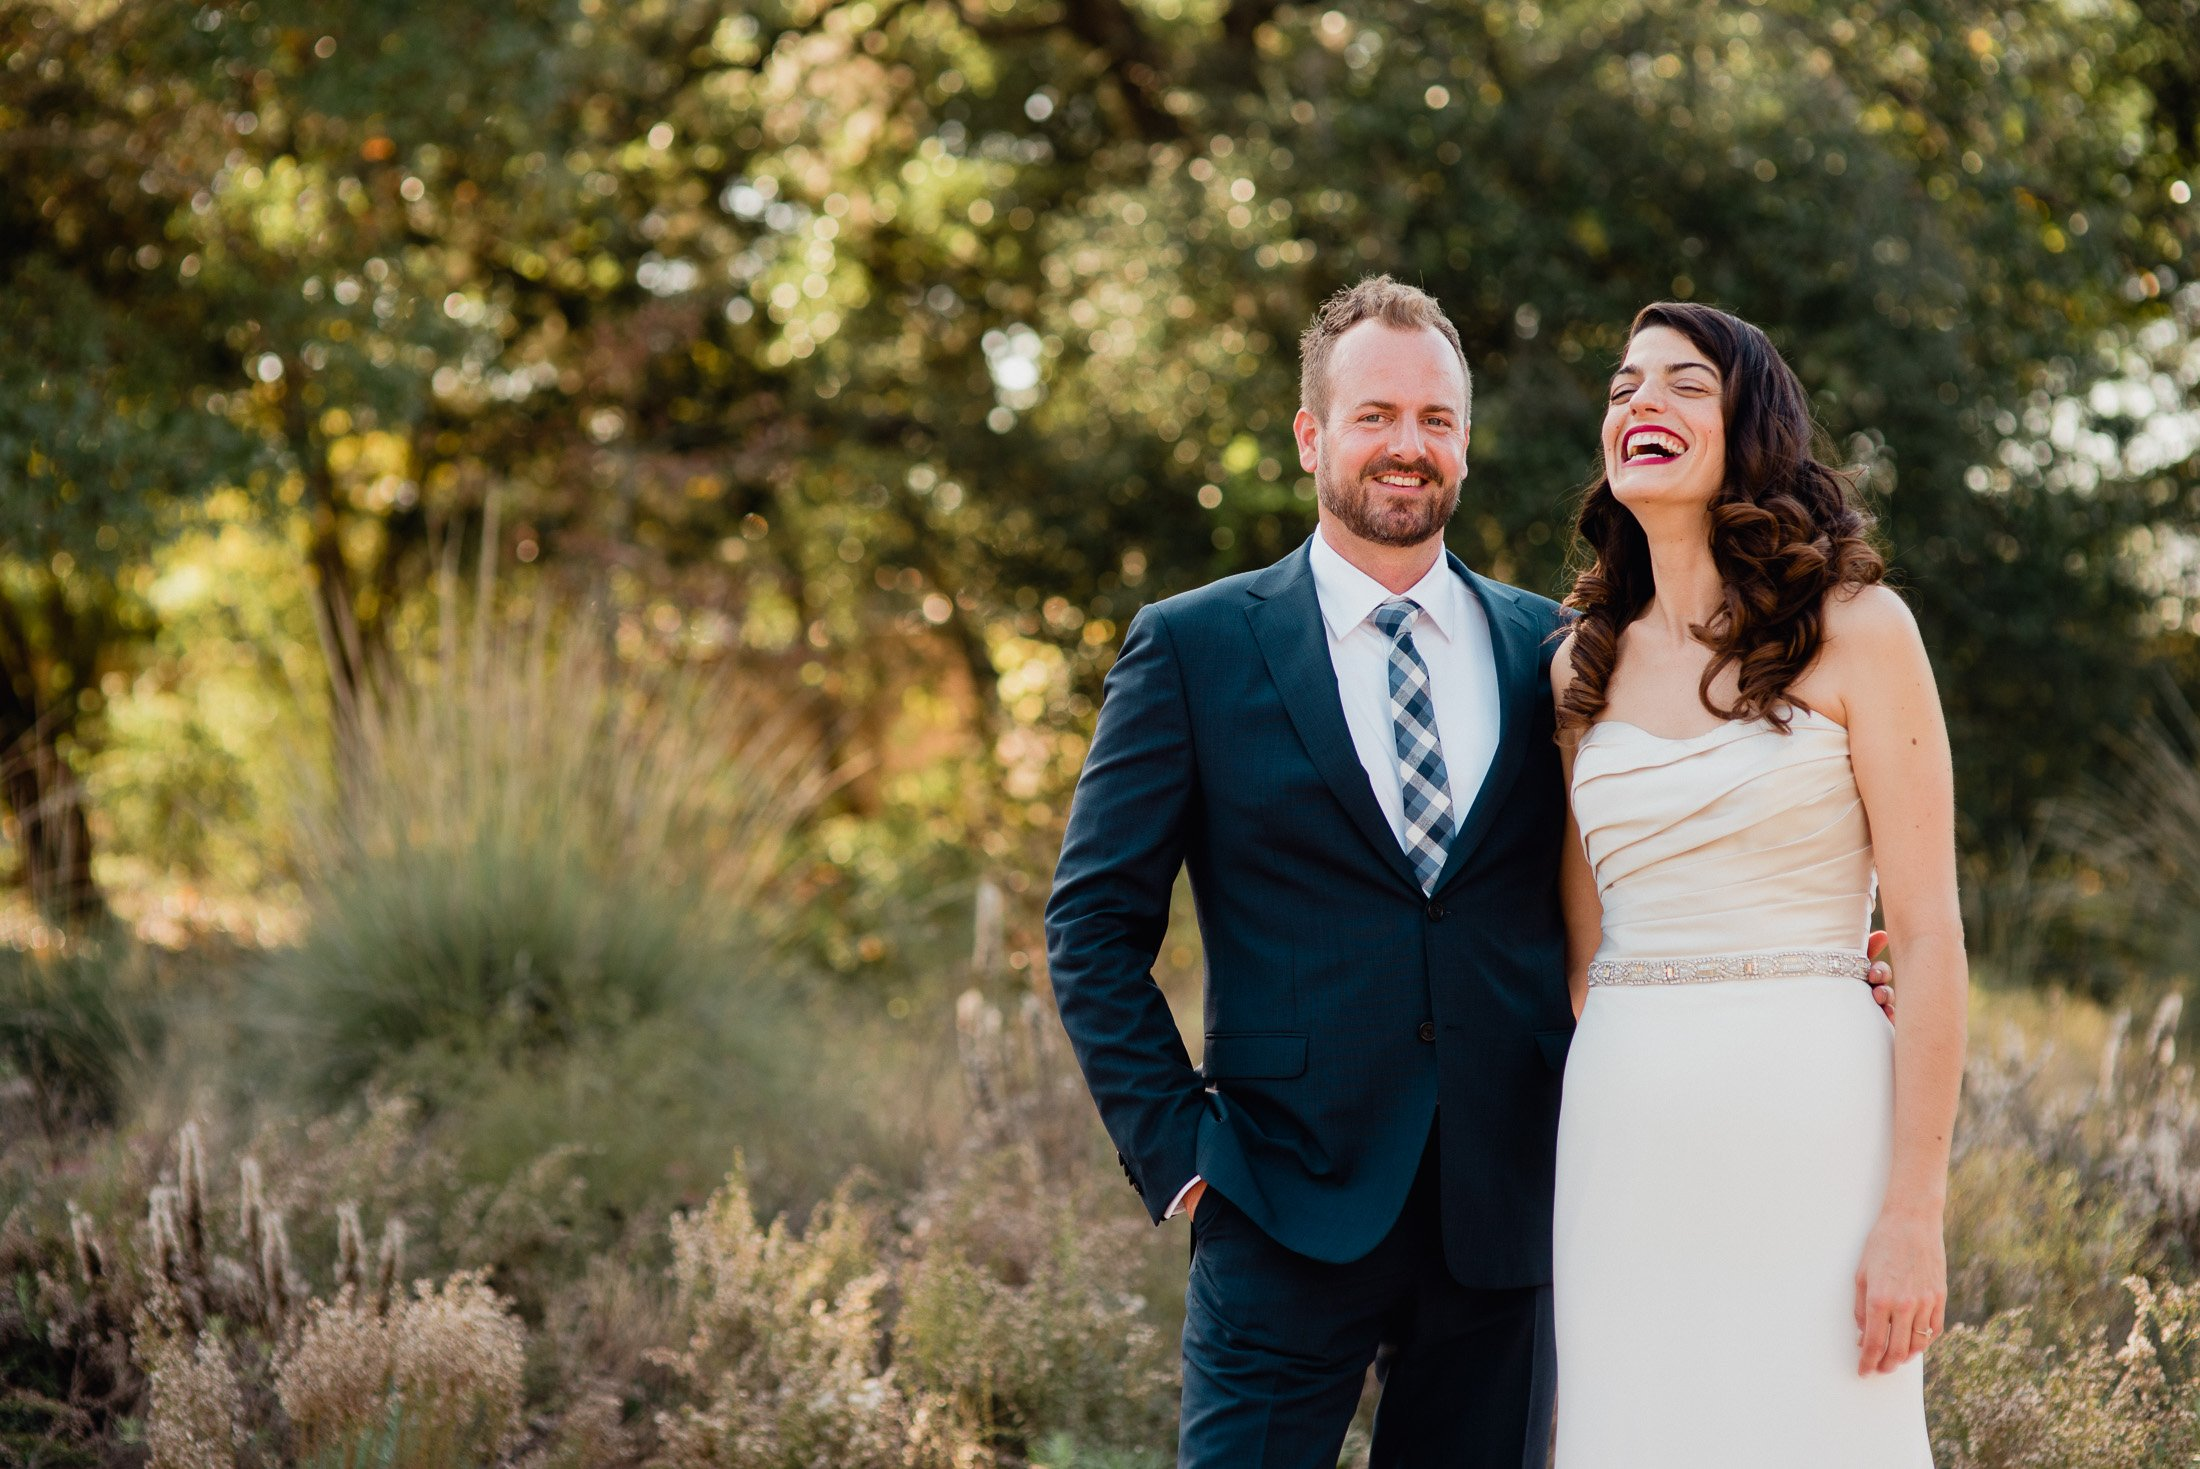 candid and real wedding photography at the austin wildflower center